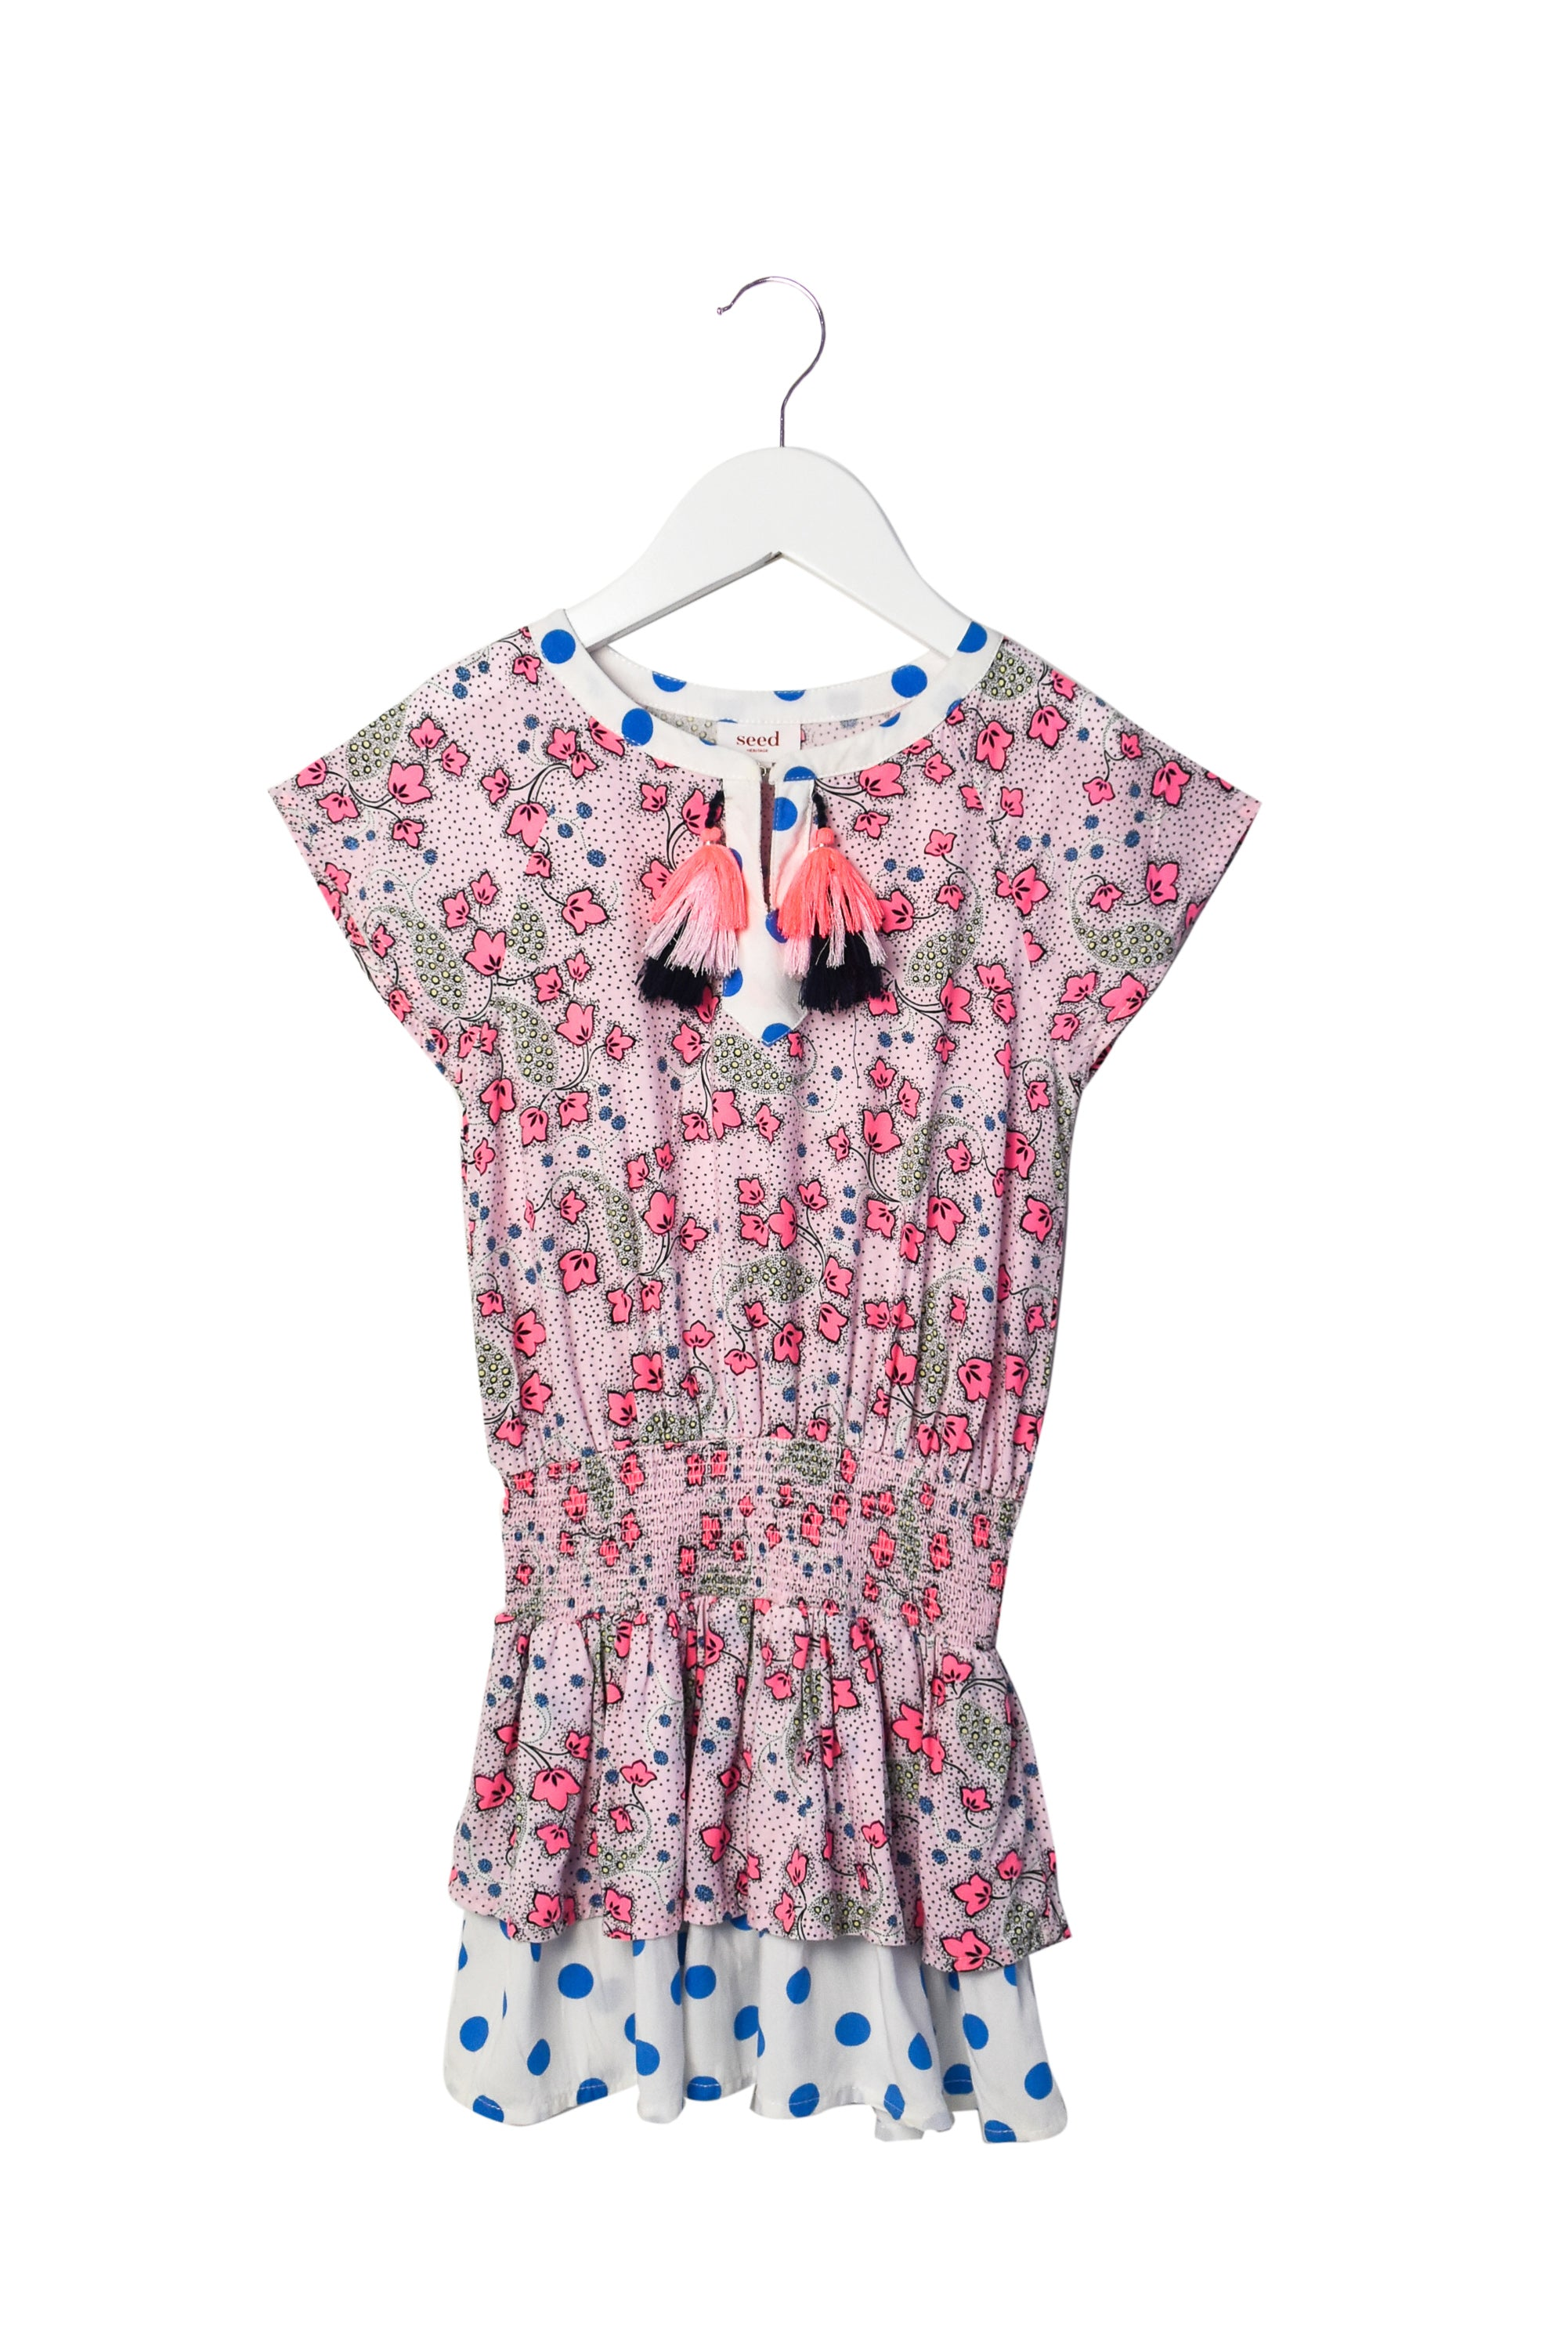 10006864 Seed Kids~Dress 4-5T at Retykle